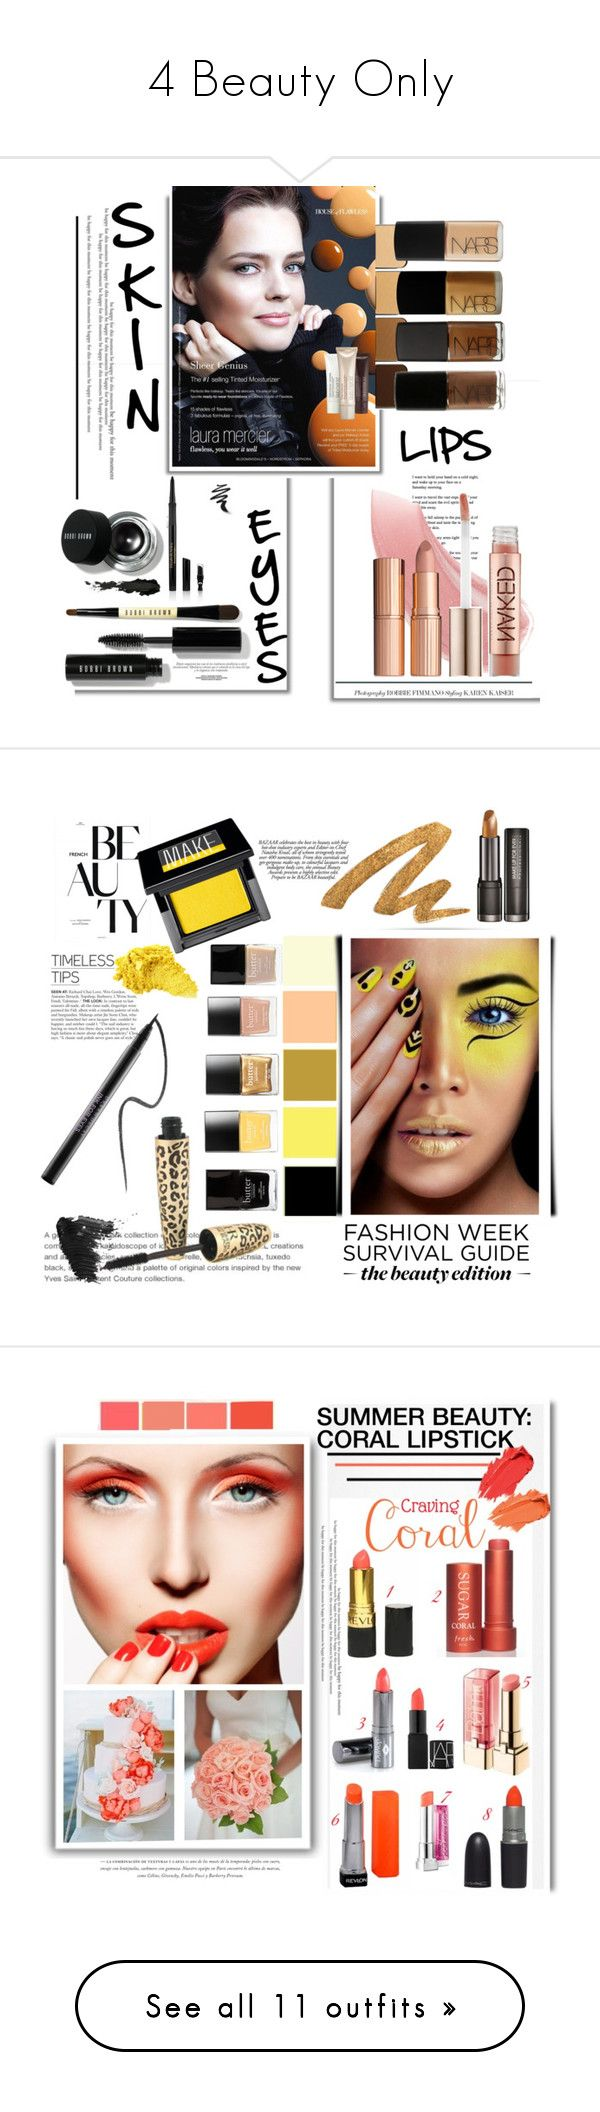 """""""4 Beauty Only"""" by emcf3548 ❤ liked on Polyvore featuring Michael Kors, Bobbi Brown Cosmetics, Laura Mercier, NARS Cosmetics, Urban Decay, Charlotte Tilbury, Elizabeth Arden, beauty, Butter London and Jack Black"""